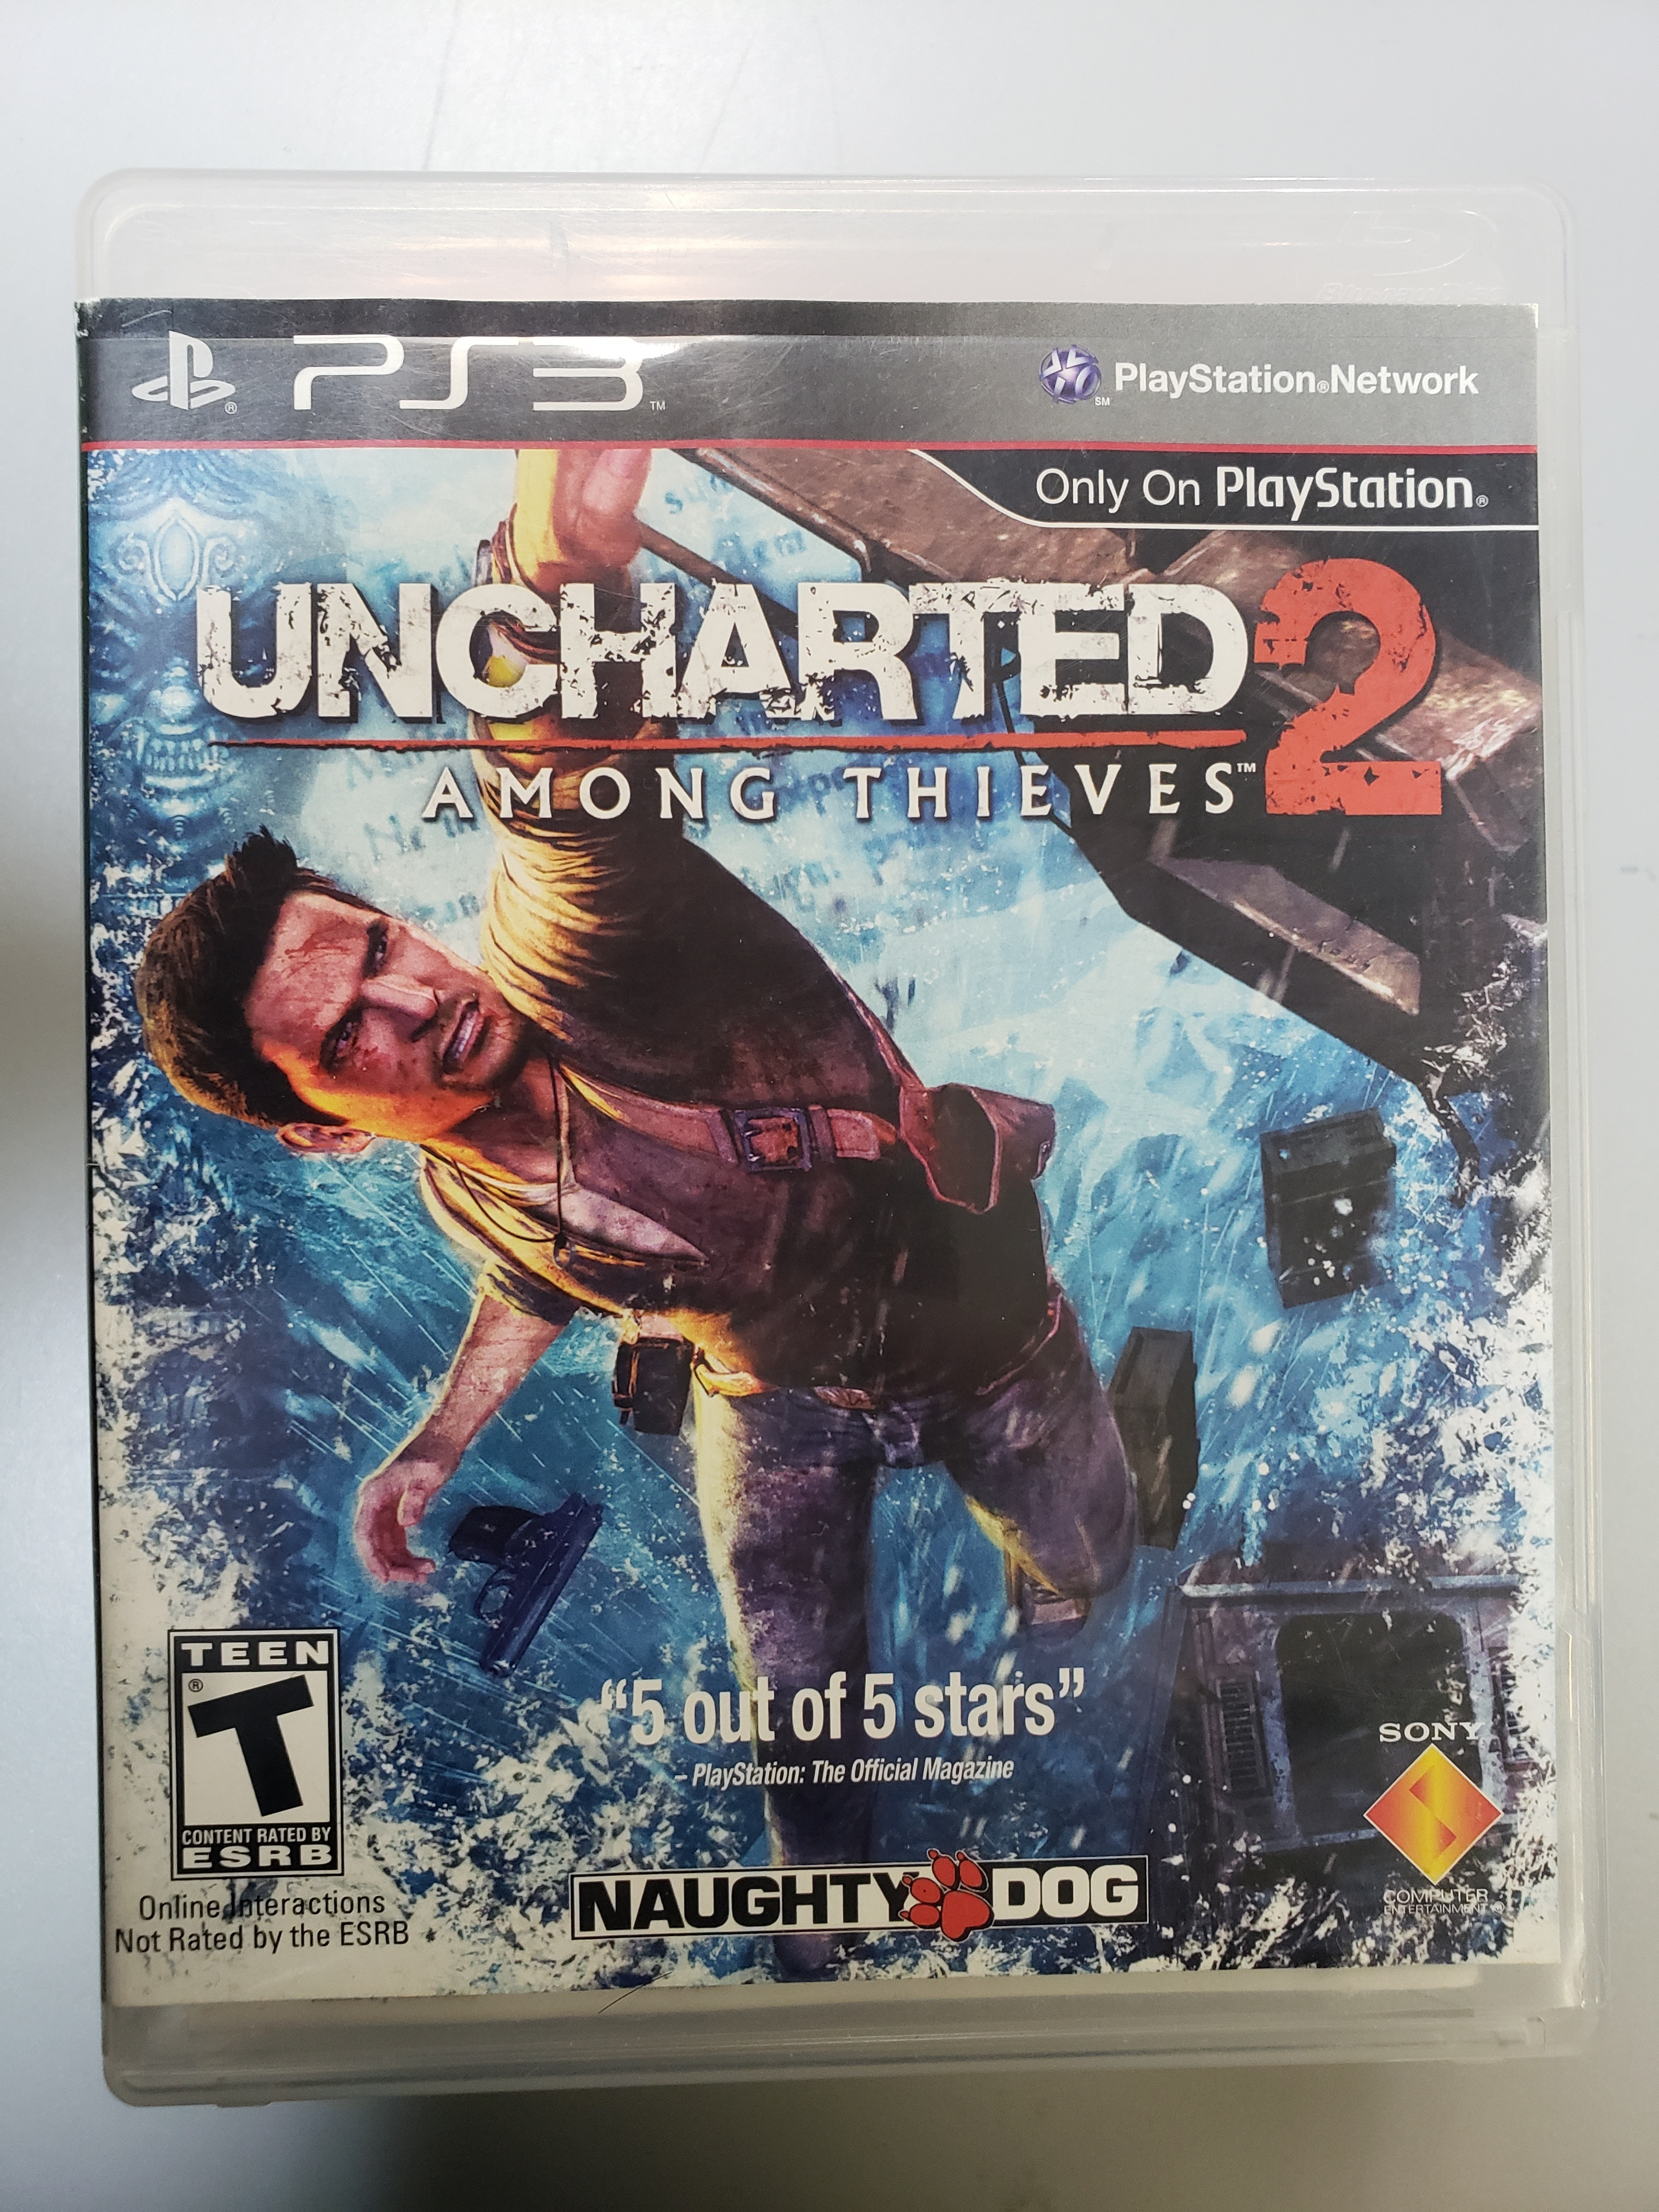 UNCHARTED 2: AMONG THIEVES - PS3 GAME